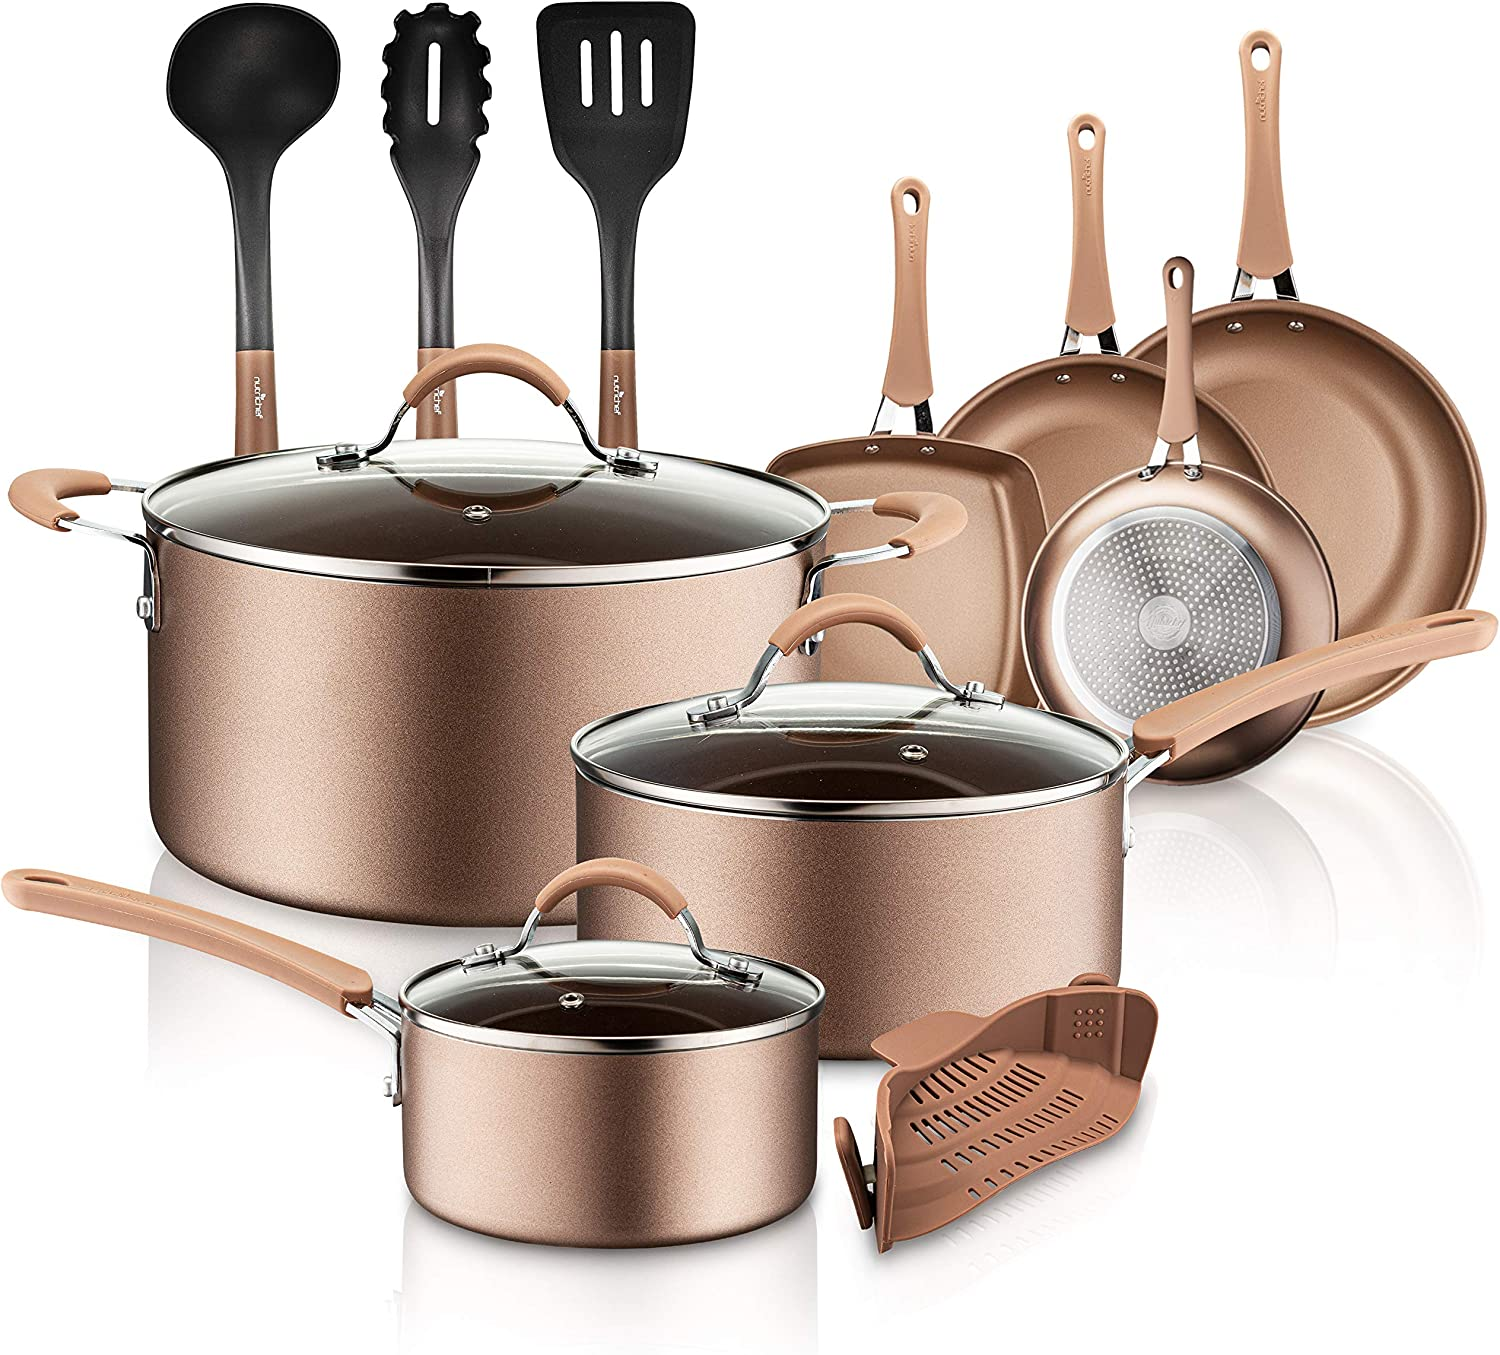 NutriChef PTFE/PFOA/PFOS 14-Piece Nonstick Cookware Set, w/Saucepan, Frying, Cooking Pots, Dutch Oven Pot, Lids, Utensil, Free Heat Resistant Lacquer Kitchen Ware Pots Pan